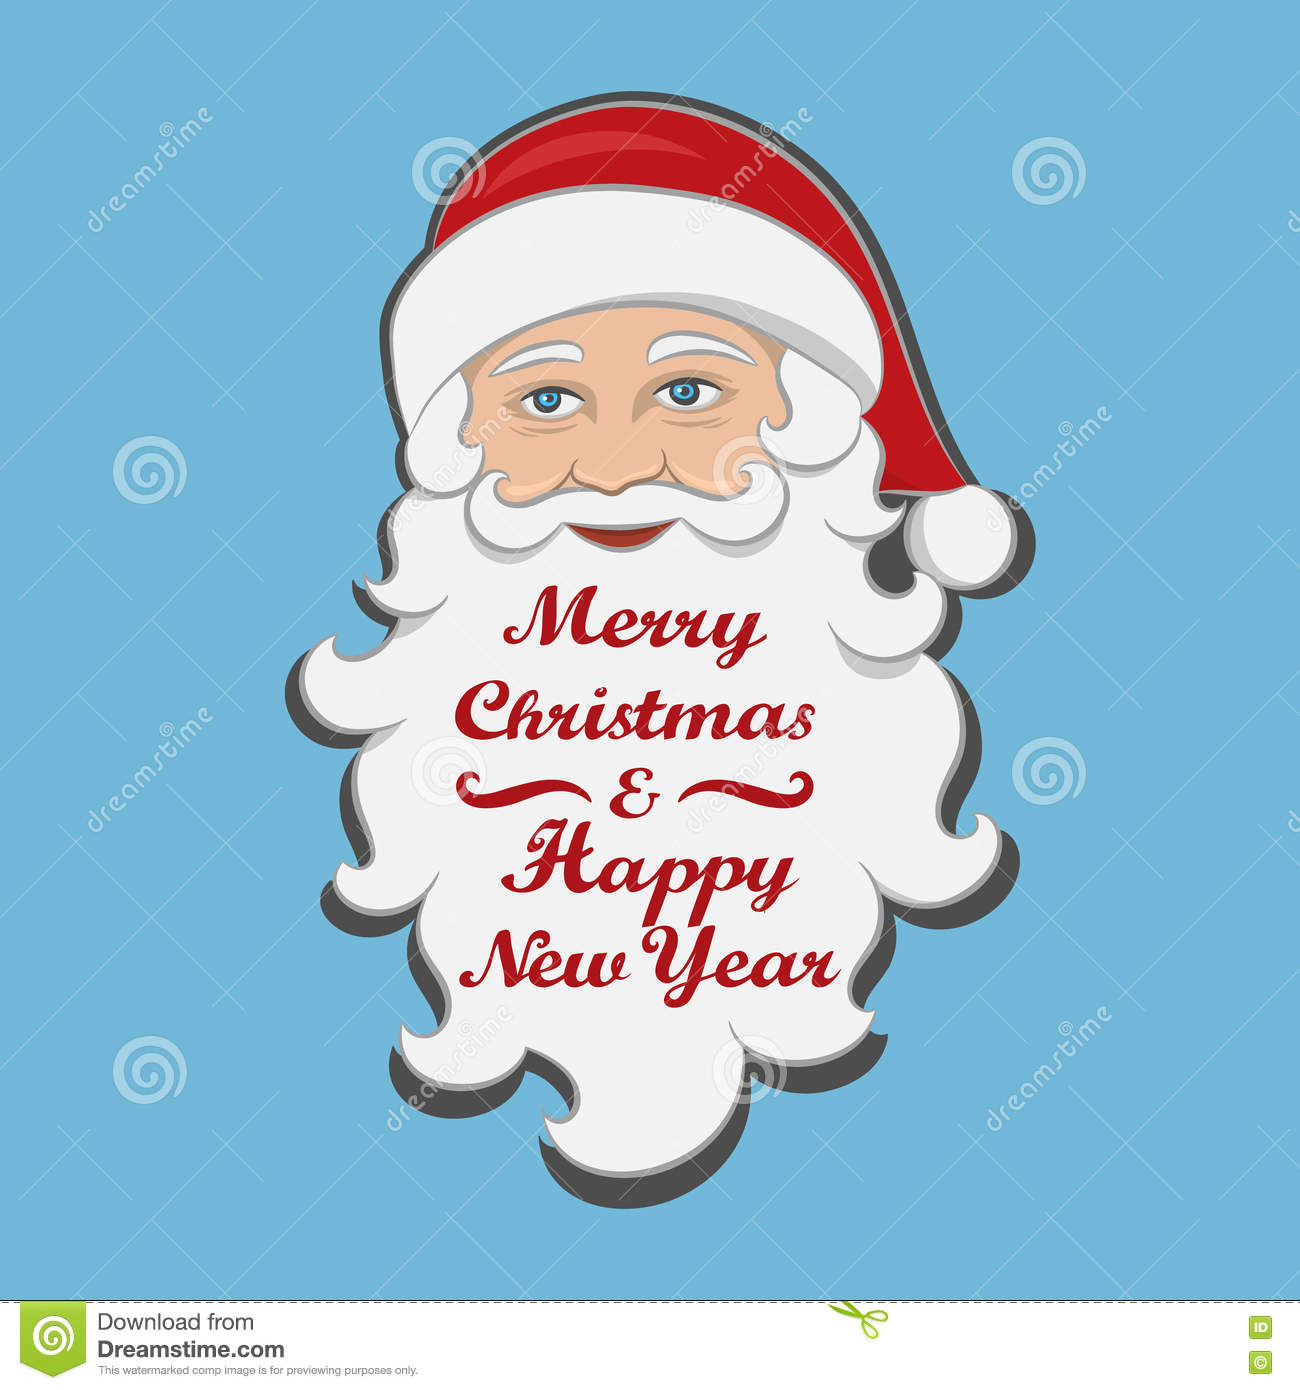 Christmas Holidays Clipart.Santa Claus Isolated Merry Christmas And Happy New Year